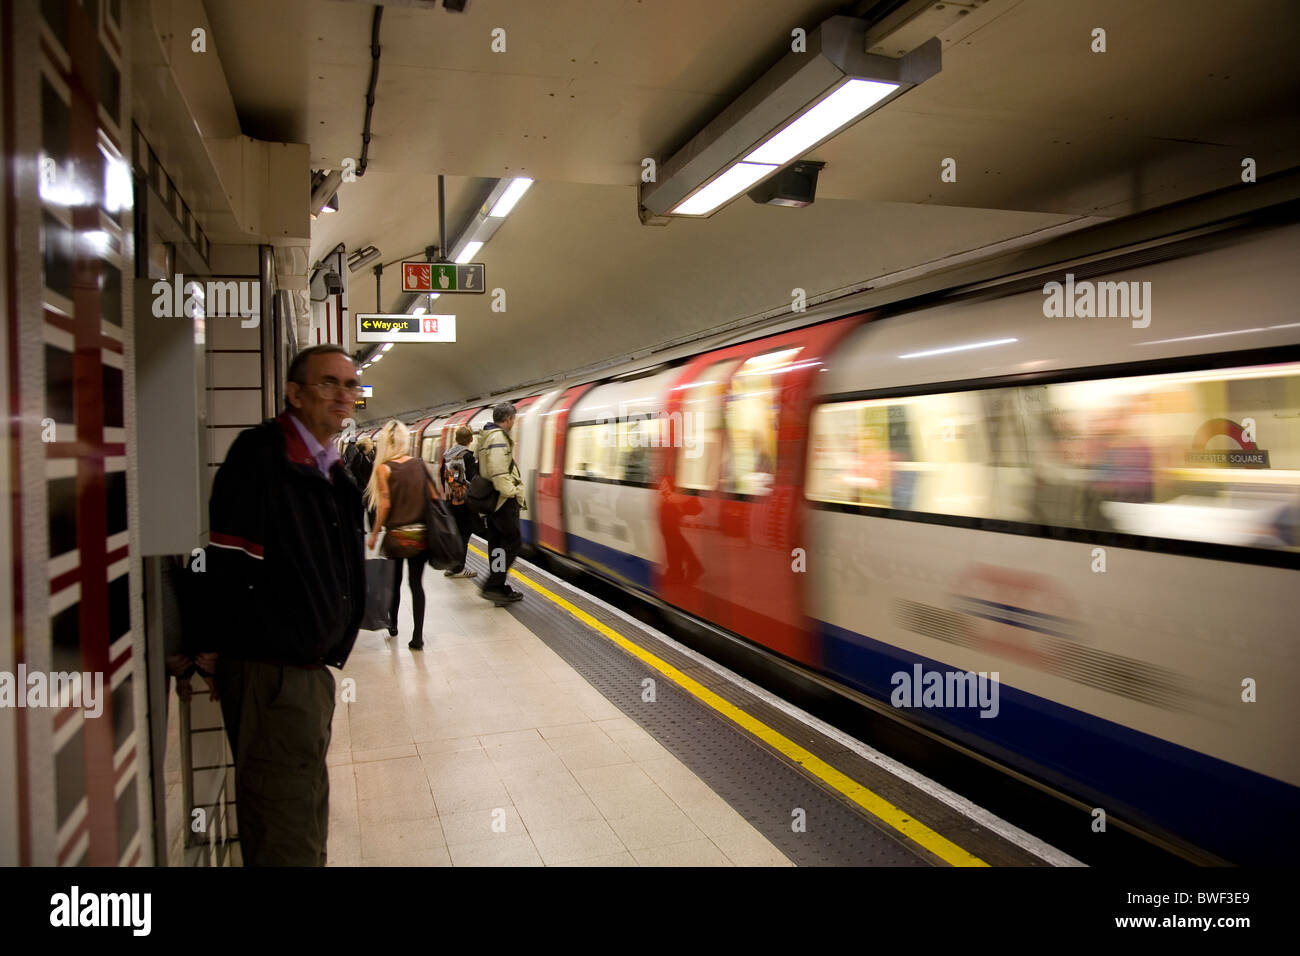 Waiting for Tube on Leicester Square - Stock Image